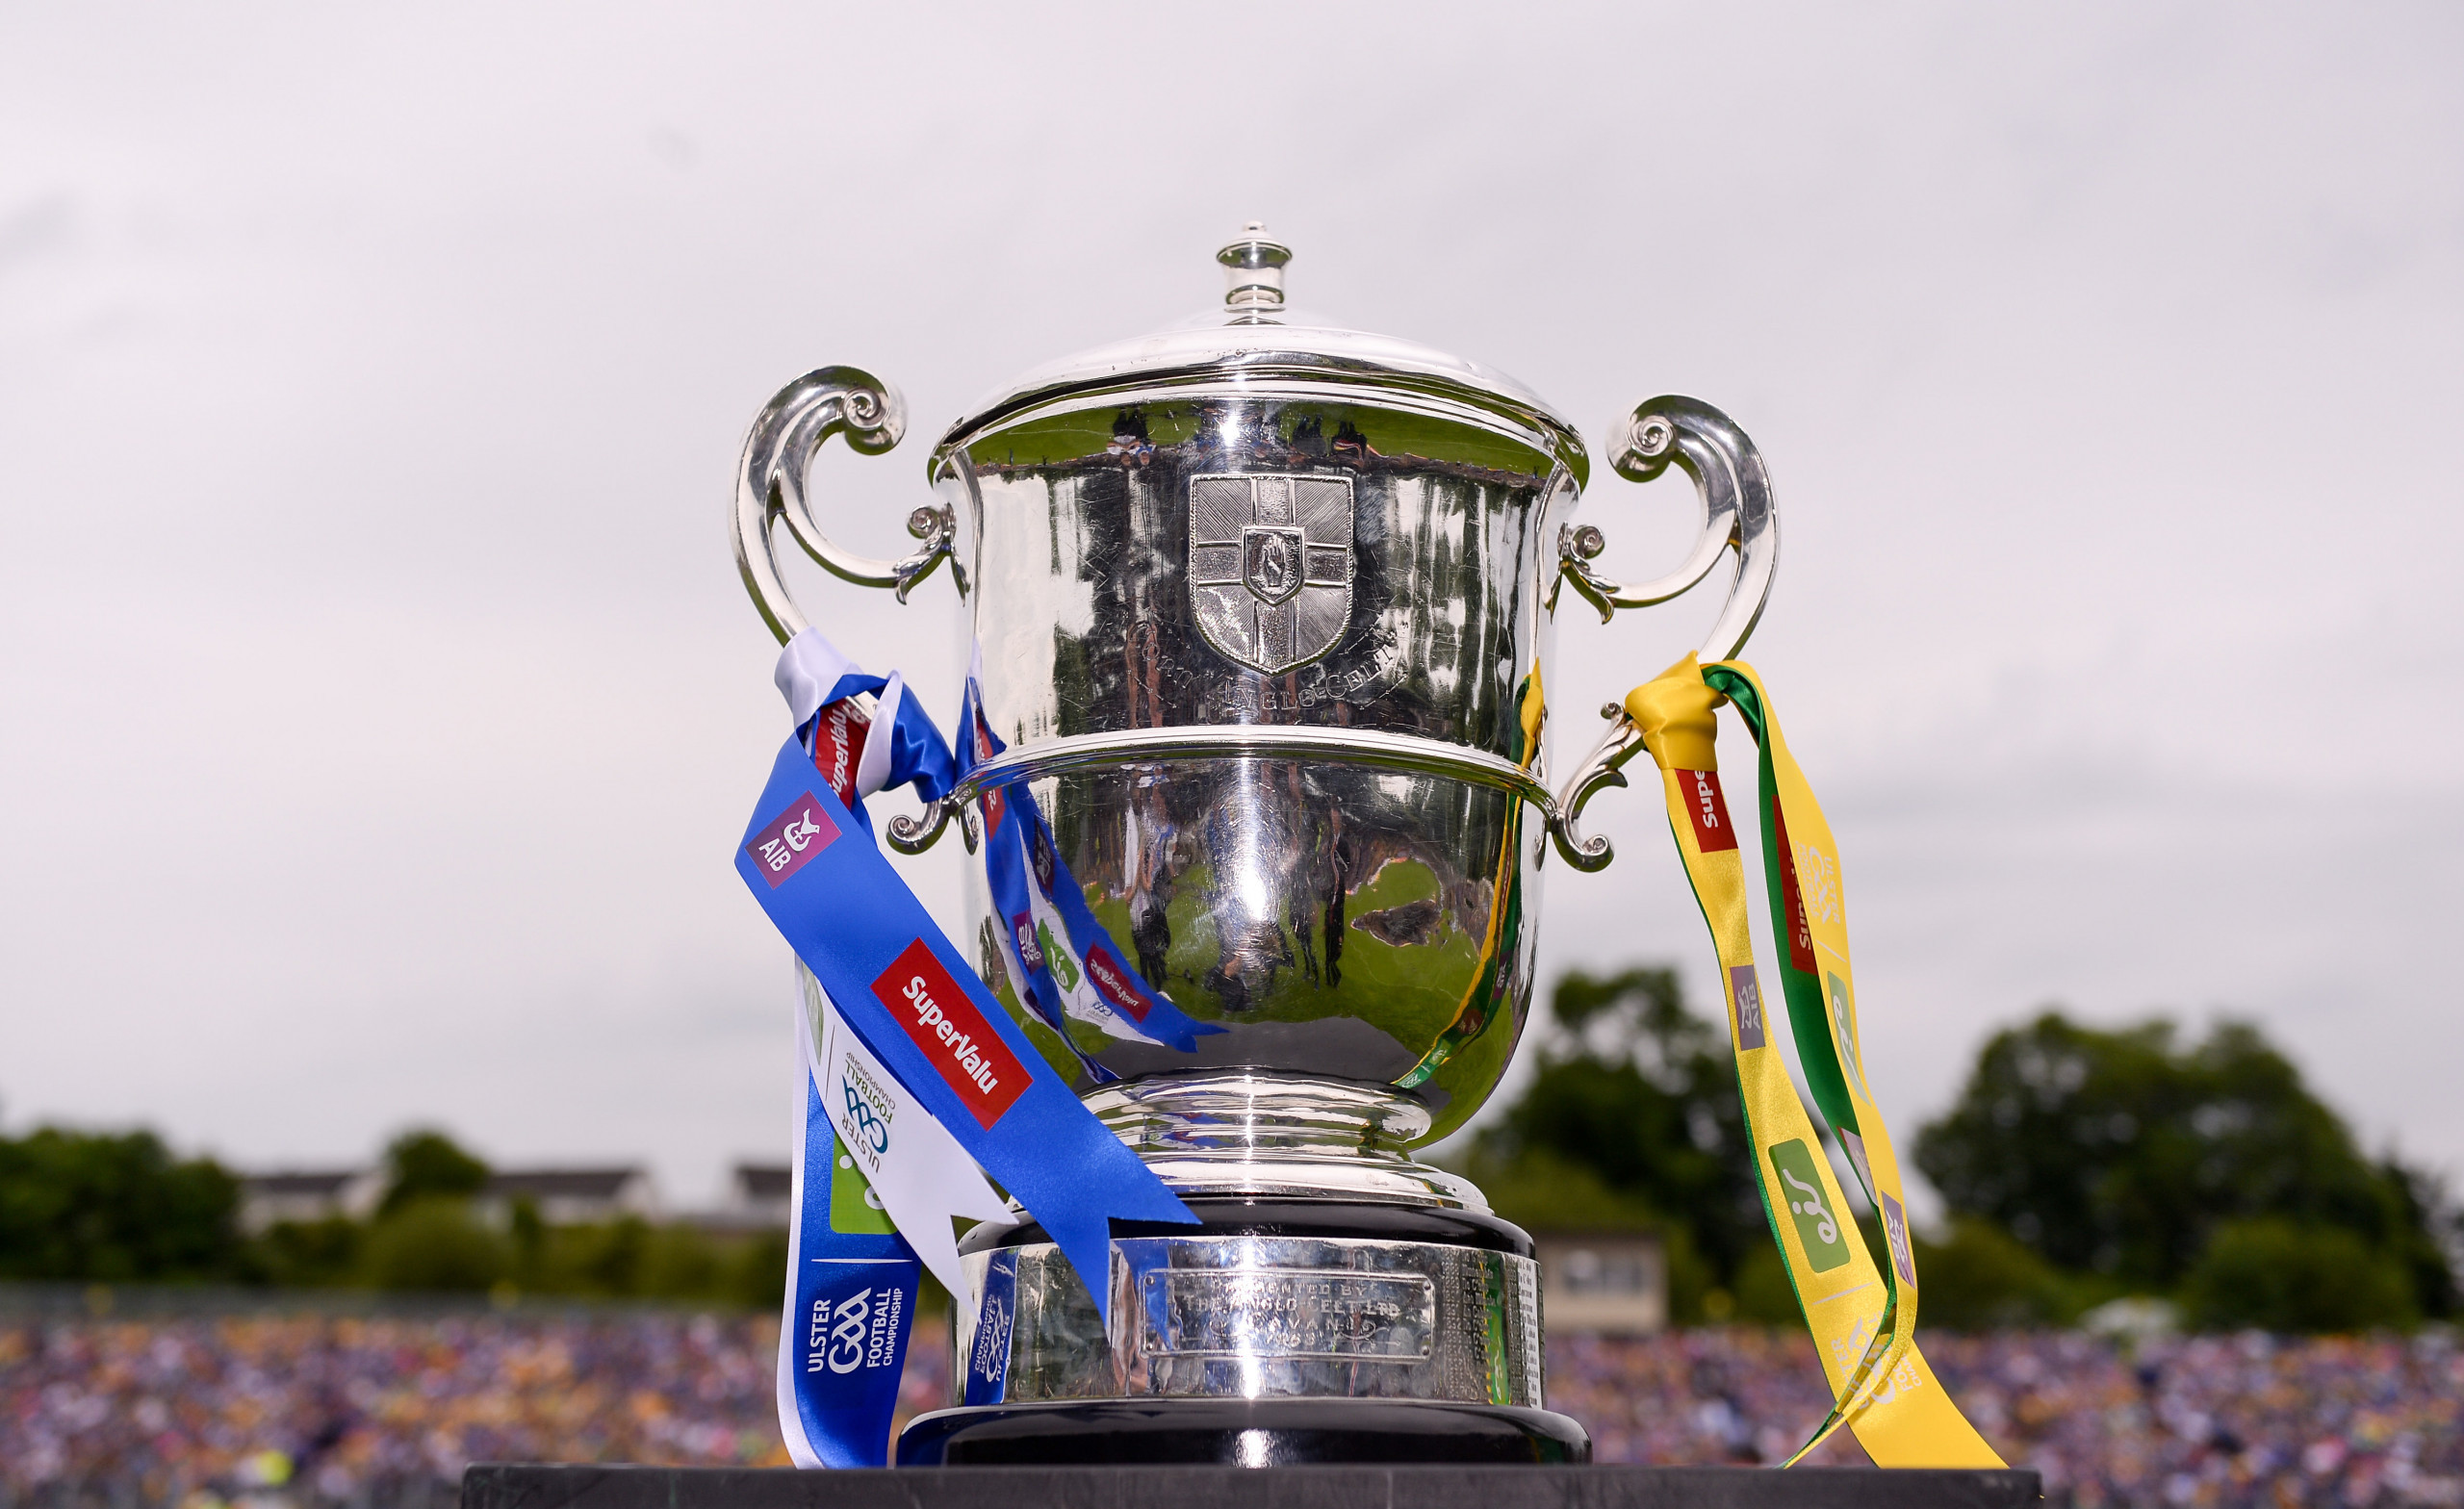 Ulster SFC Final Preview: Cavan v Donegal